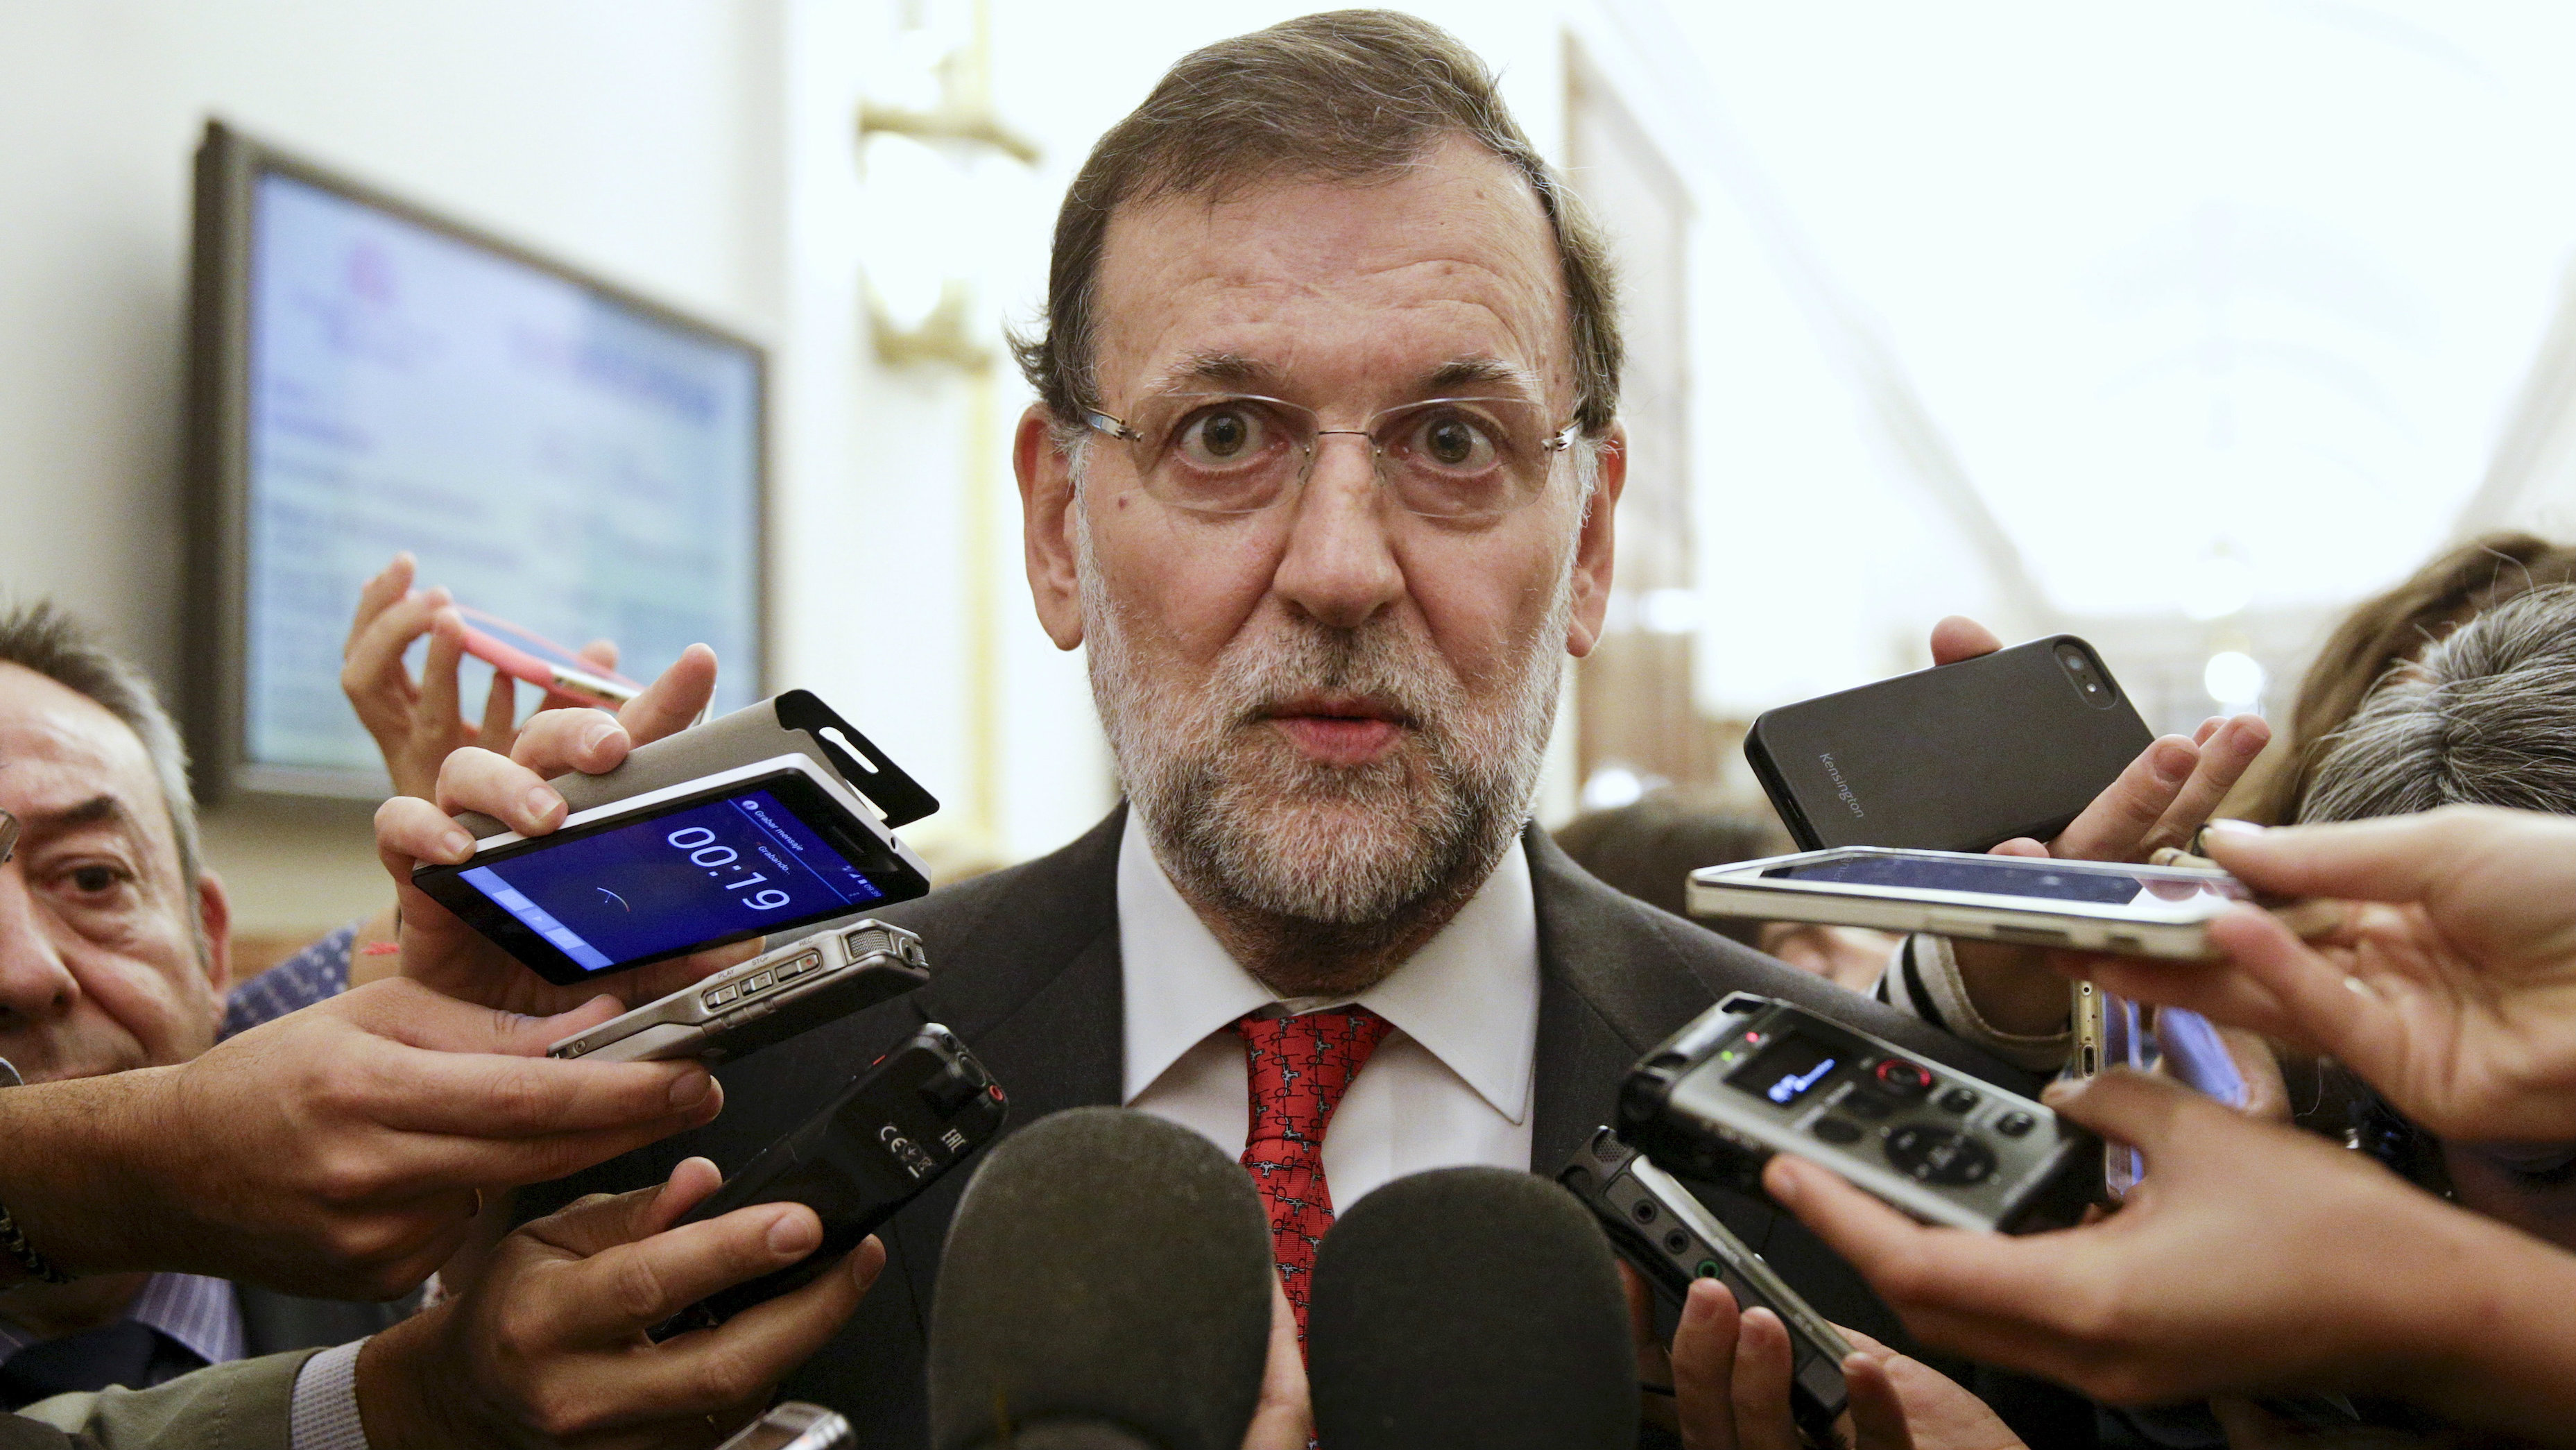 No joy for Rajoy.